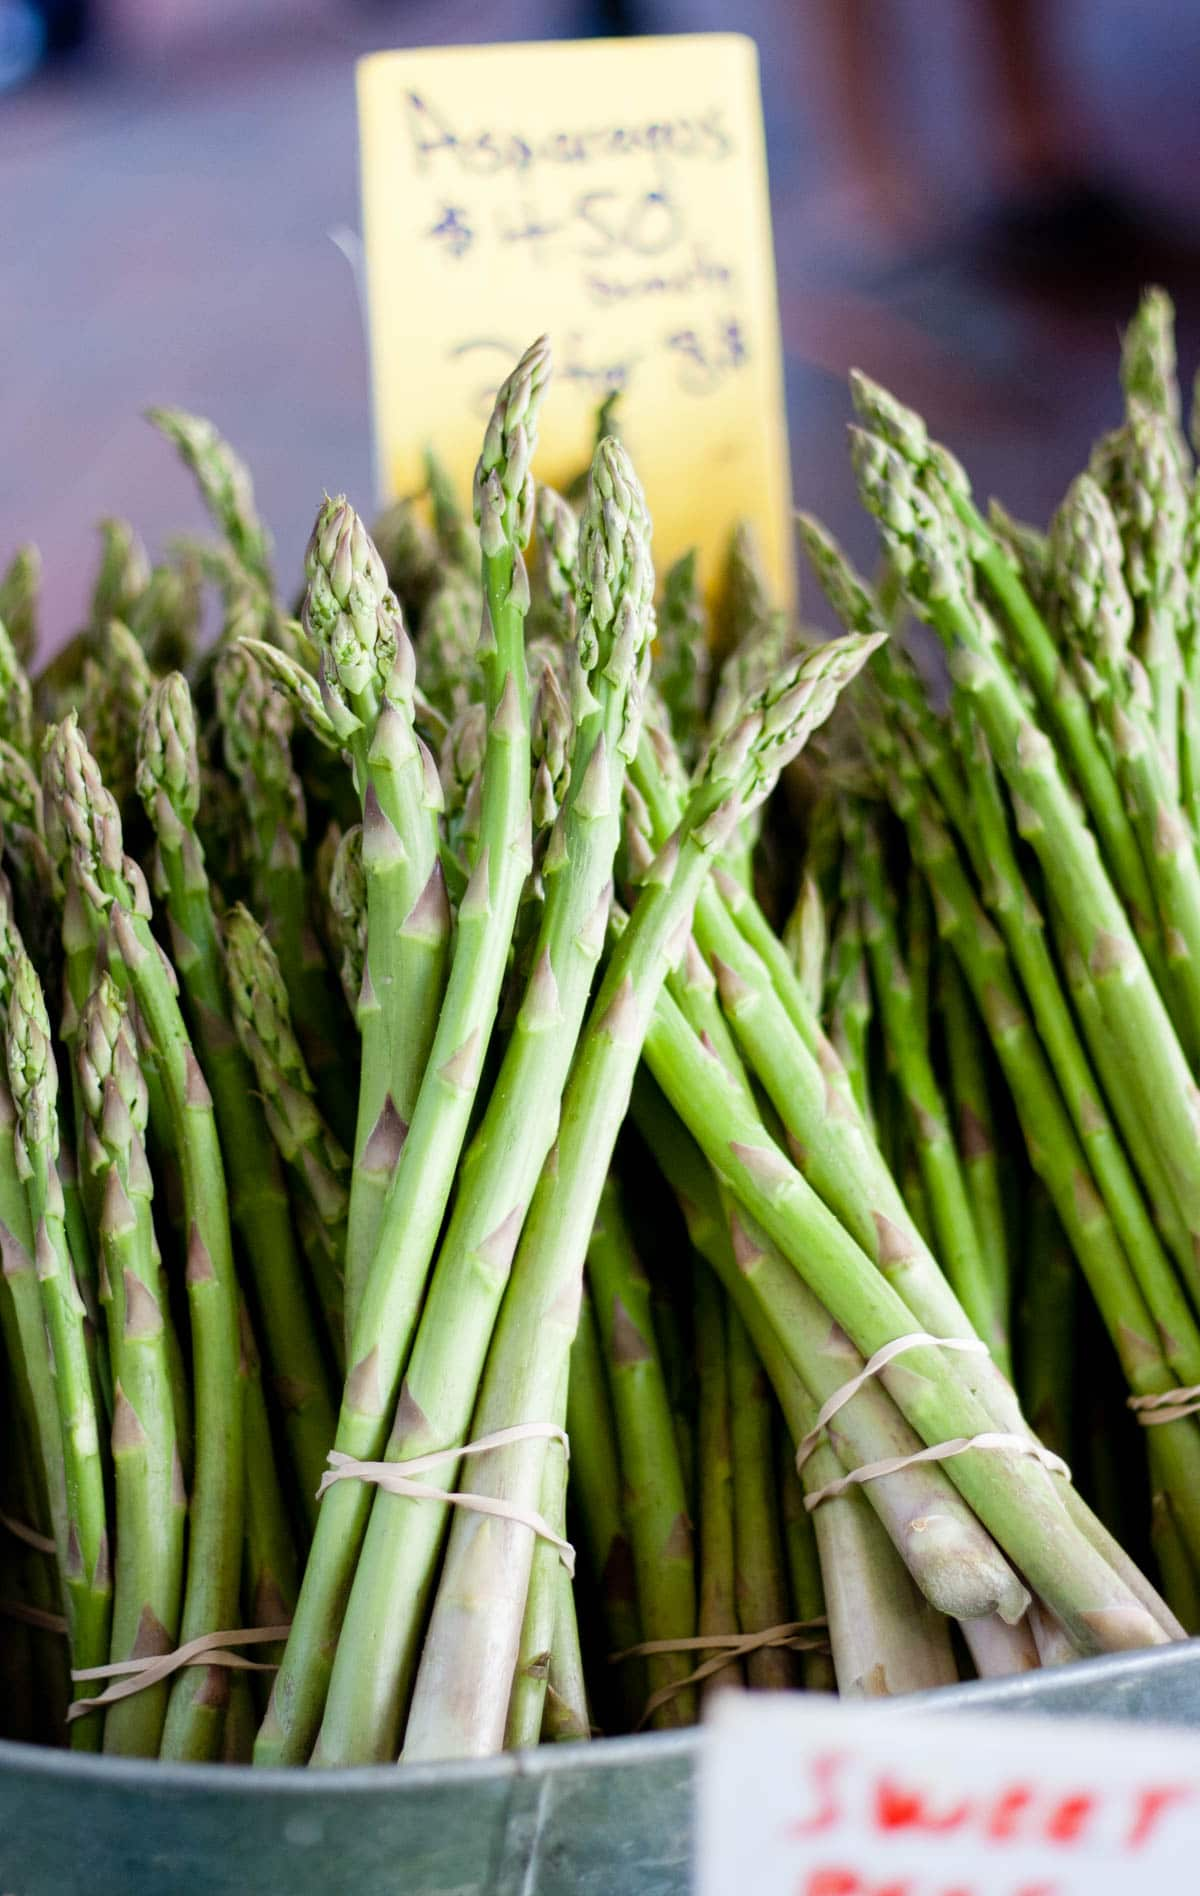 Bunches of fresh asparagus in the market